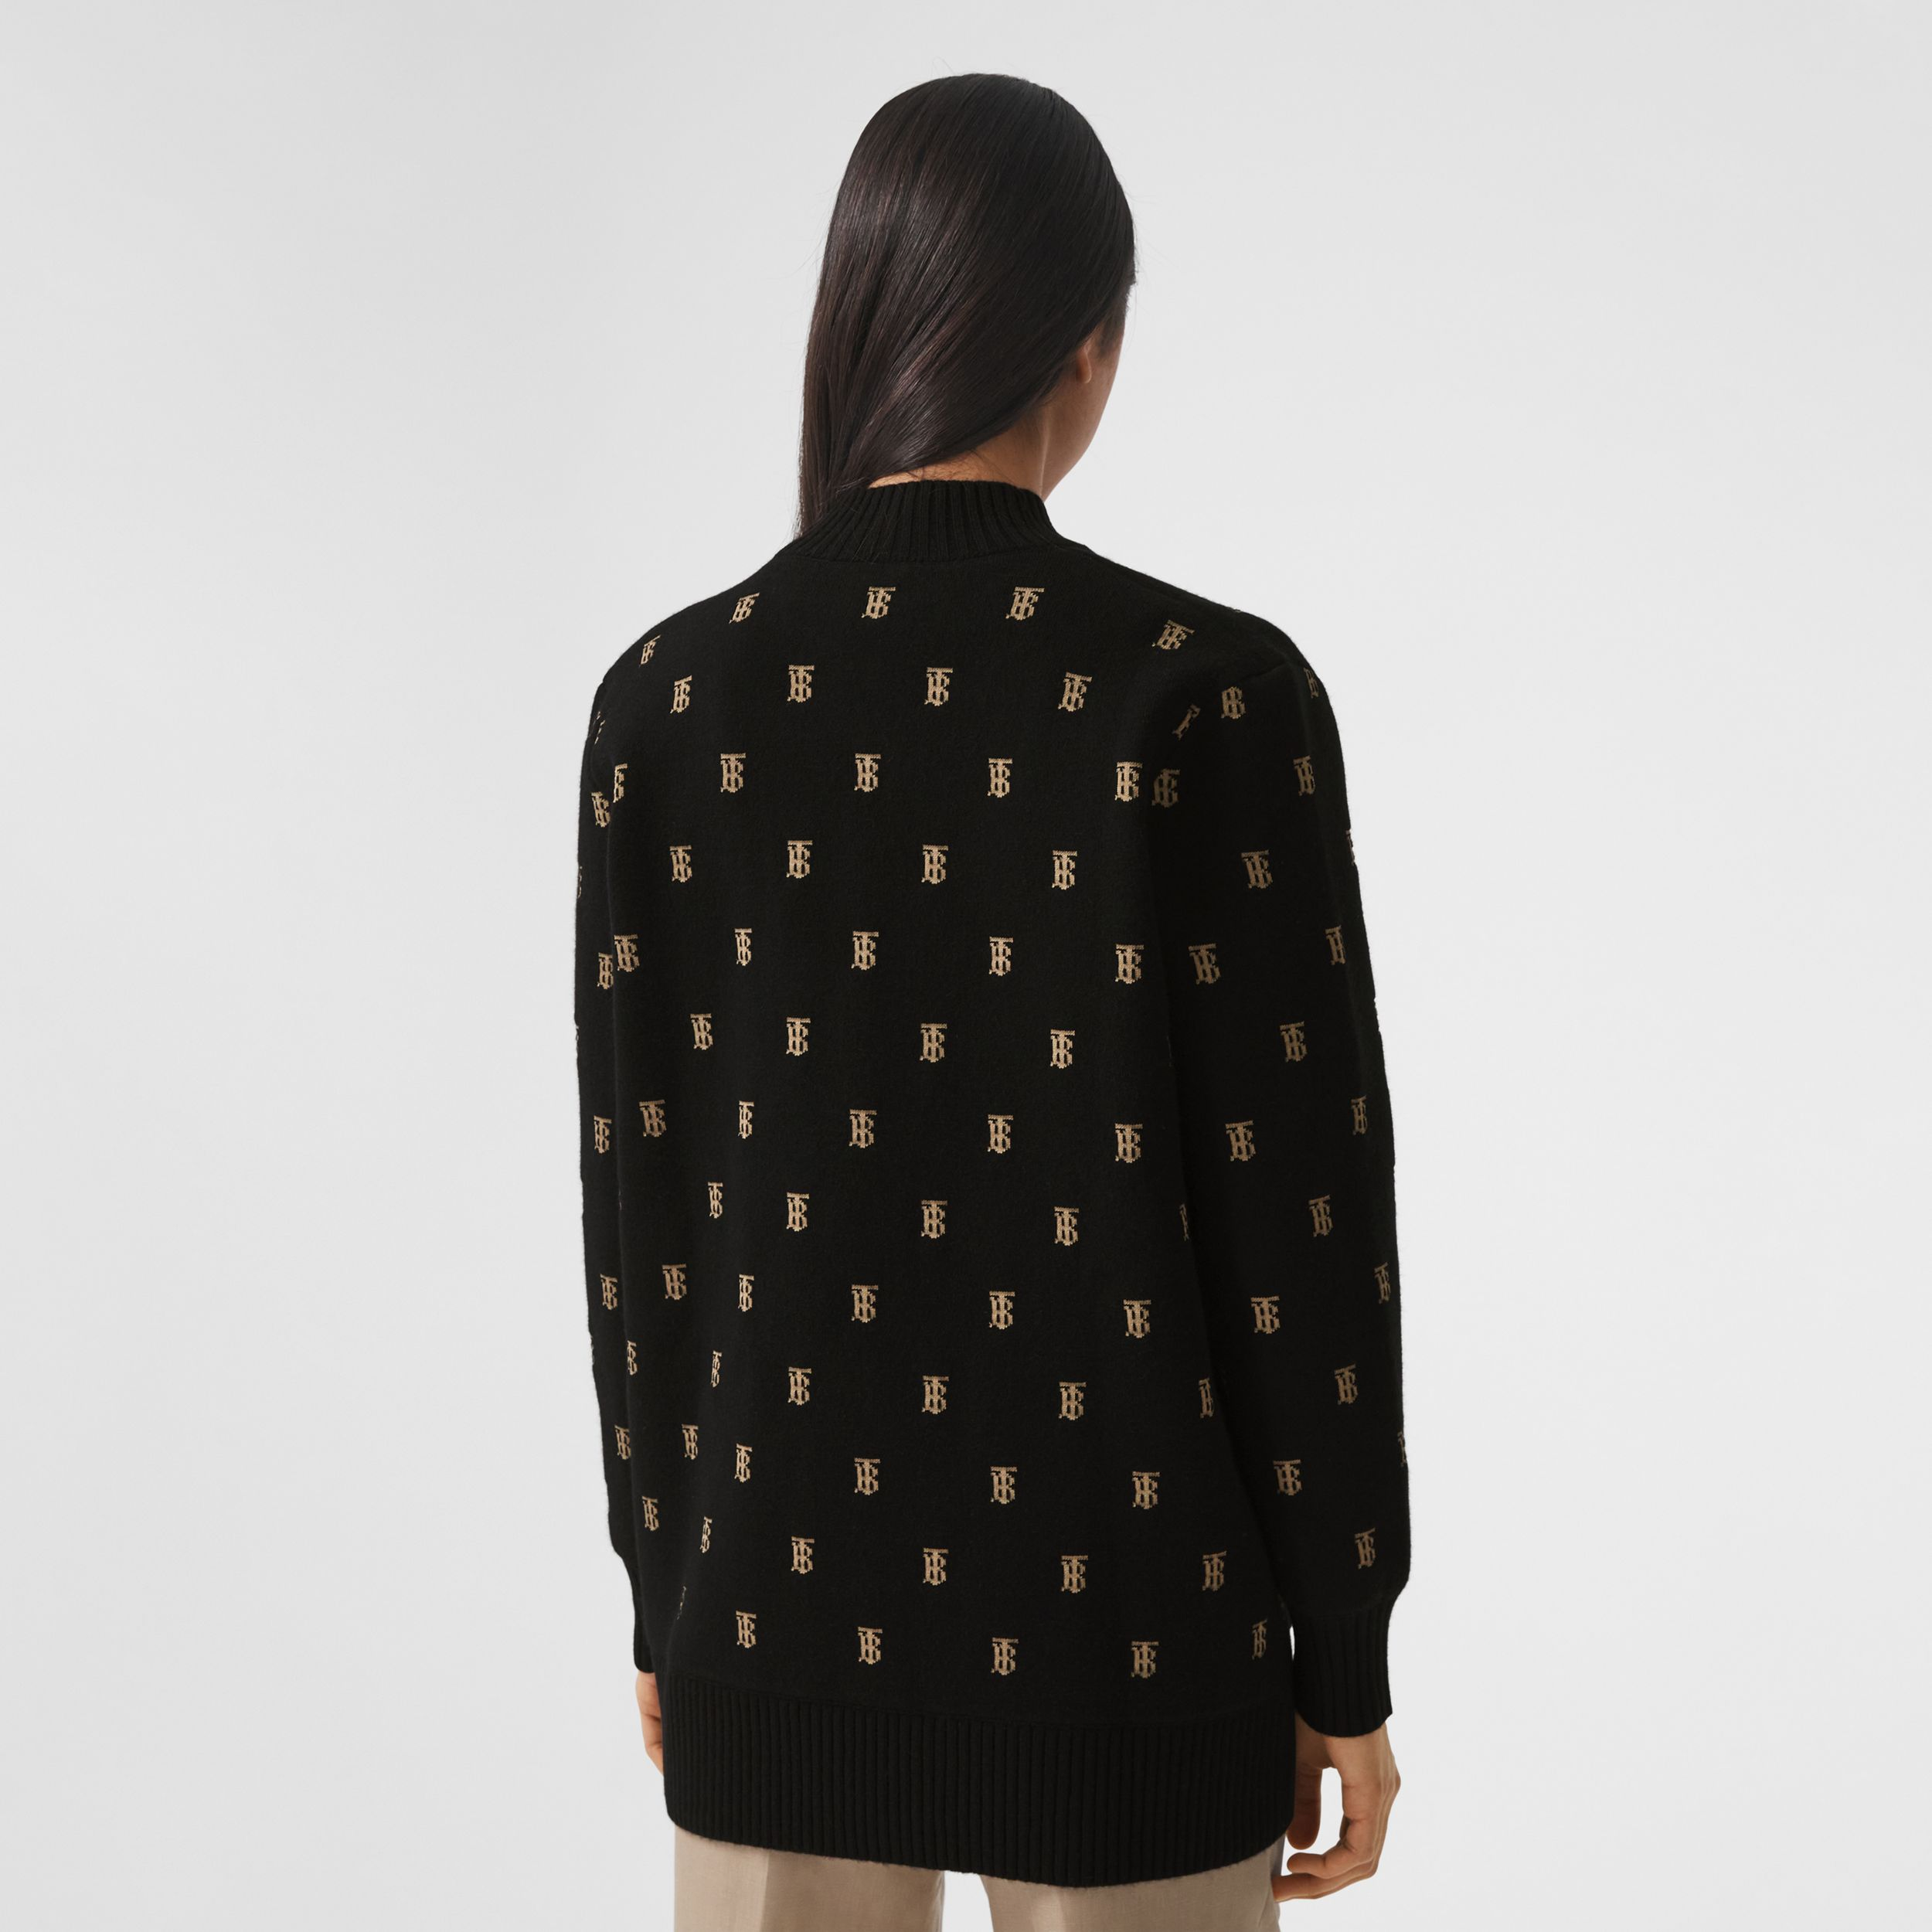 Monogram Wool Cashmere Blend Oversized Cardigan in Black - Women | Burberry - 3